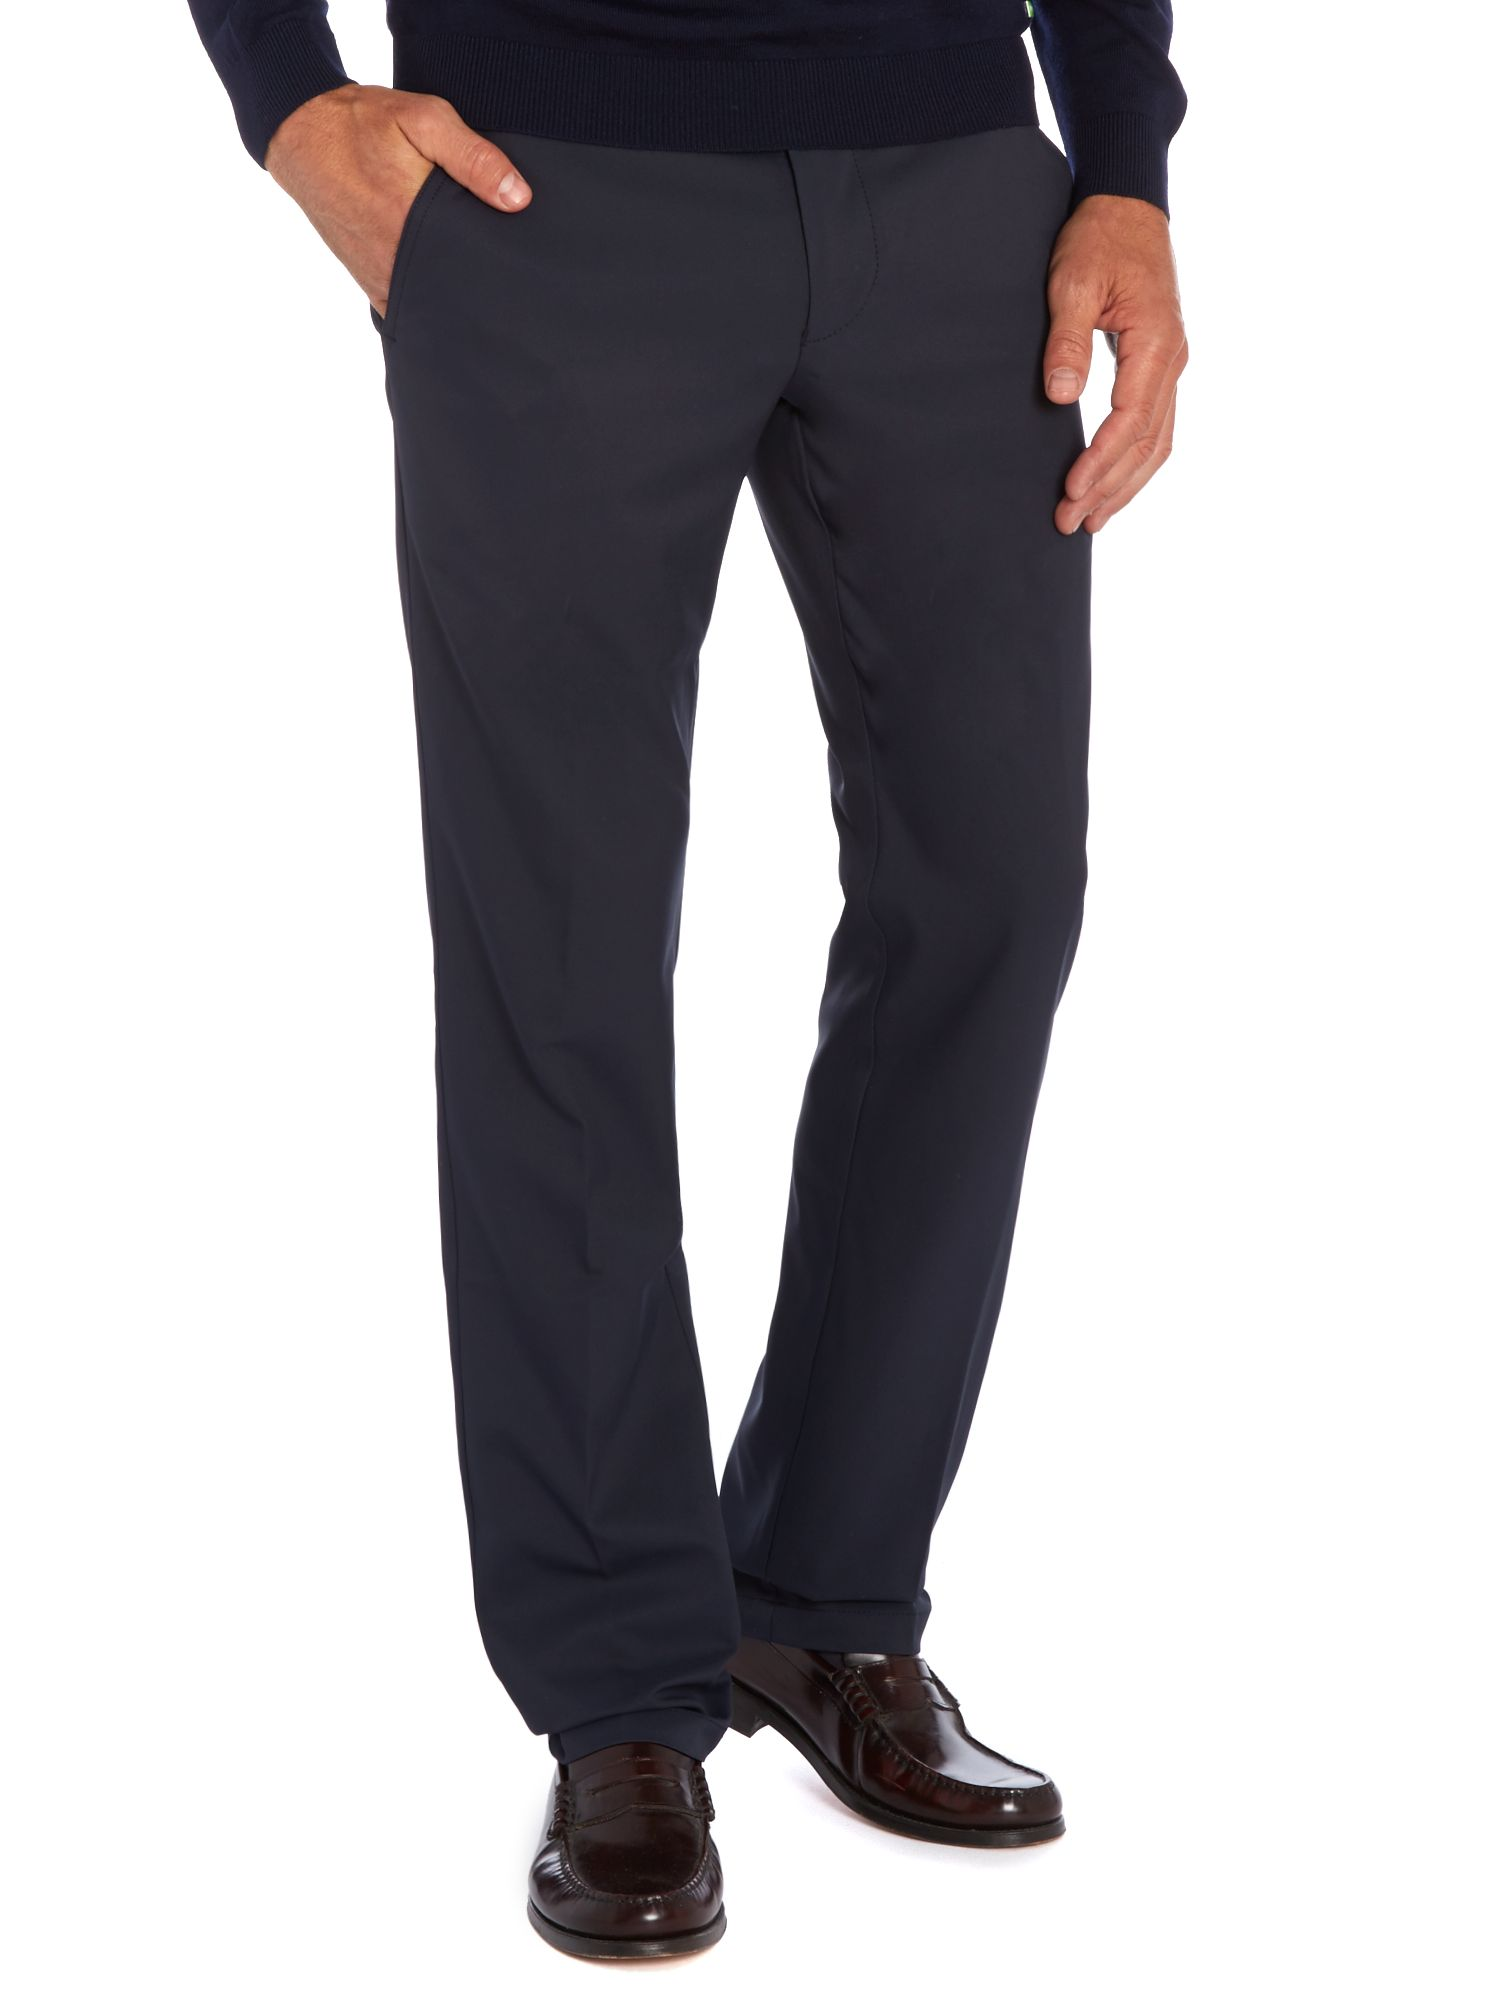 Button front golf trousers